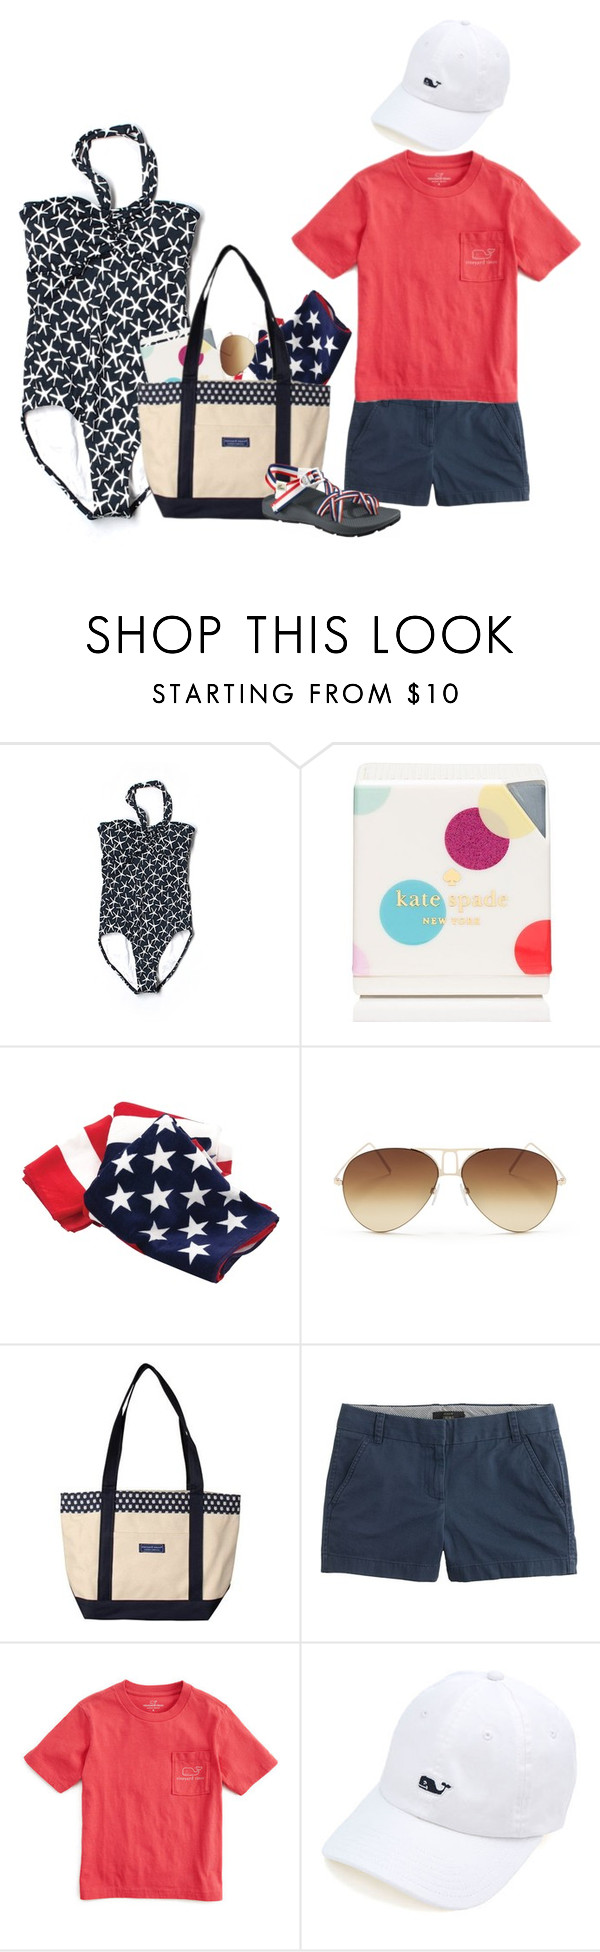 """A Day at the Tropical Beach-Day 3 of Contest"" by sc-prep-girl on Polyvore featuring Vineyard Vines, Kate Spade, Victoria Beckham, J.Crew, Chaco, remigets1K and 1Kforspring"